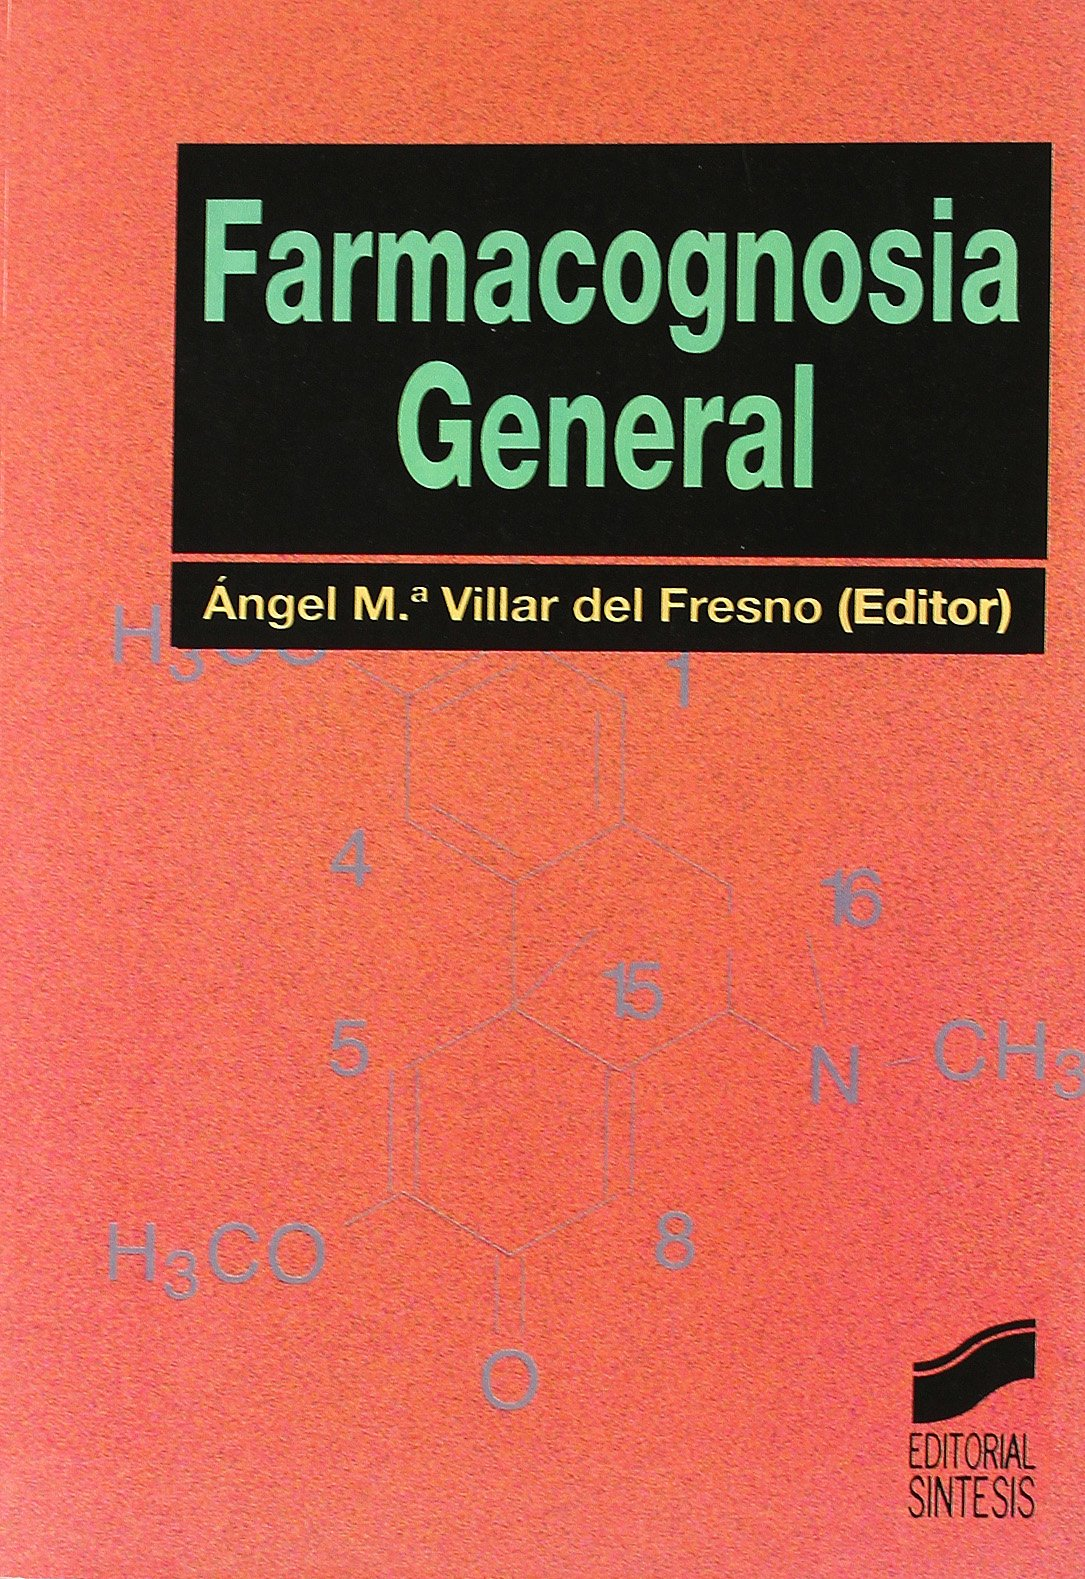 Farmacognosia general (Síntesis farmacia): Amazon.es: Villar del ...